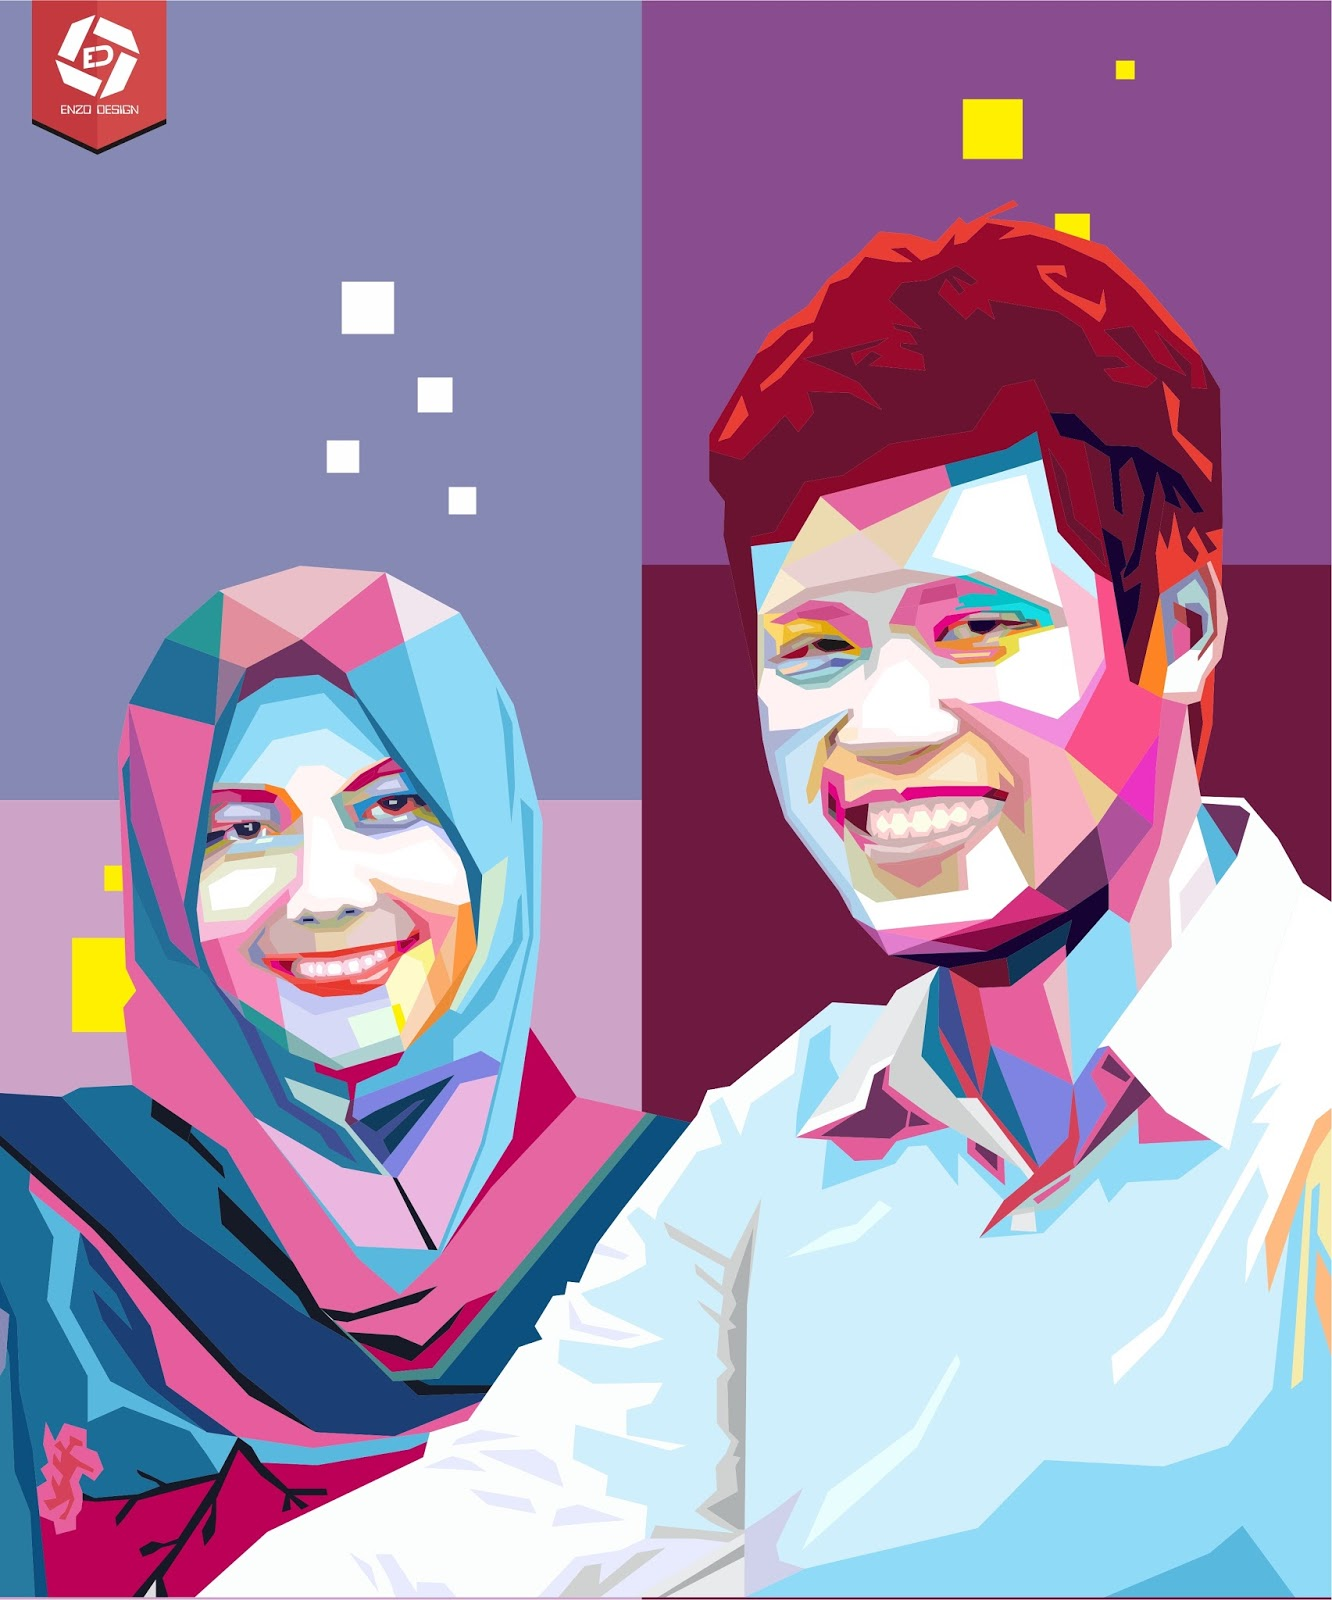 [Design Services] Make A Pop Art (WPAP and Vector Art) Professional and Fast - Corel Draw Effect ...